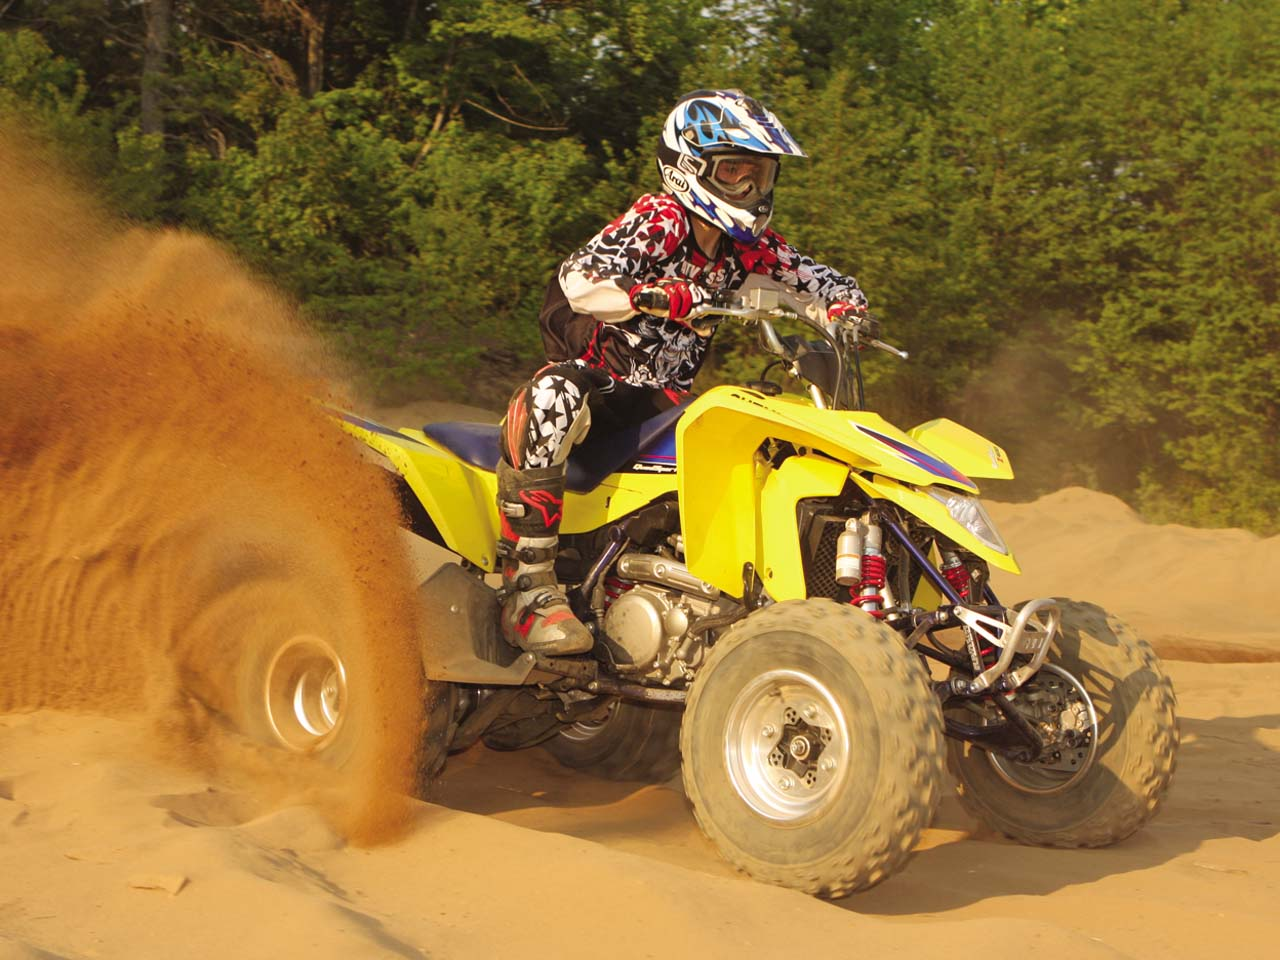 Best Sport ATV - The 2011 Suzuki LTZ 400 | ATV Illustrated